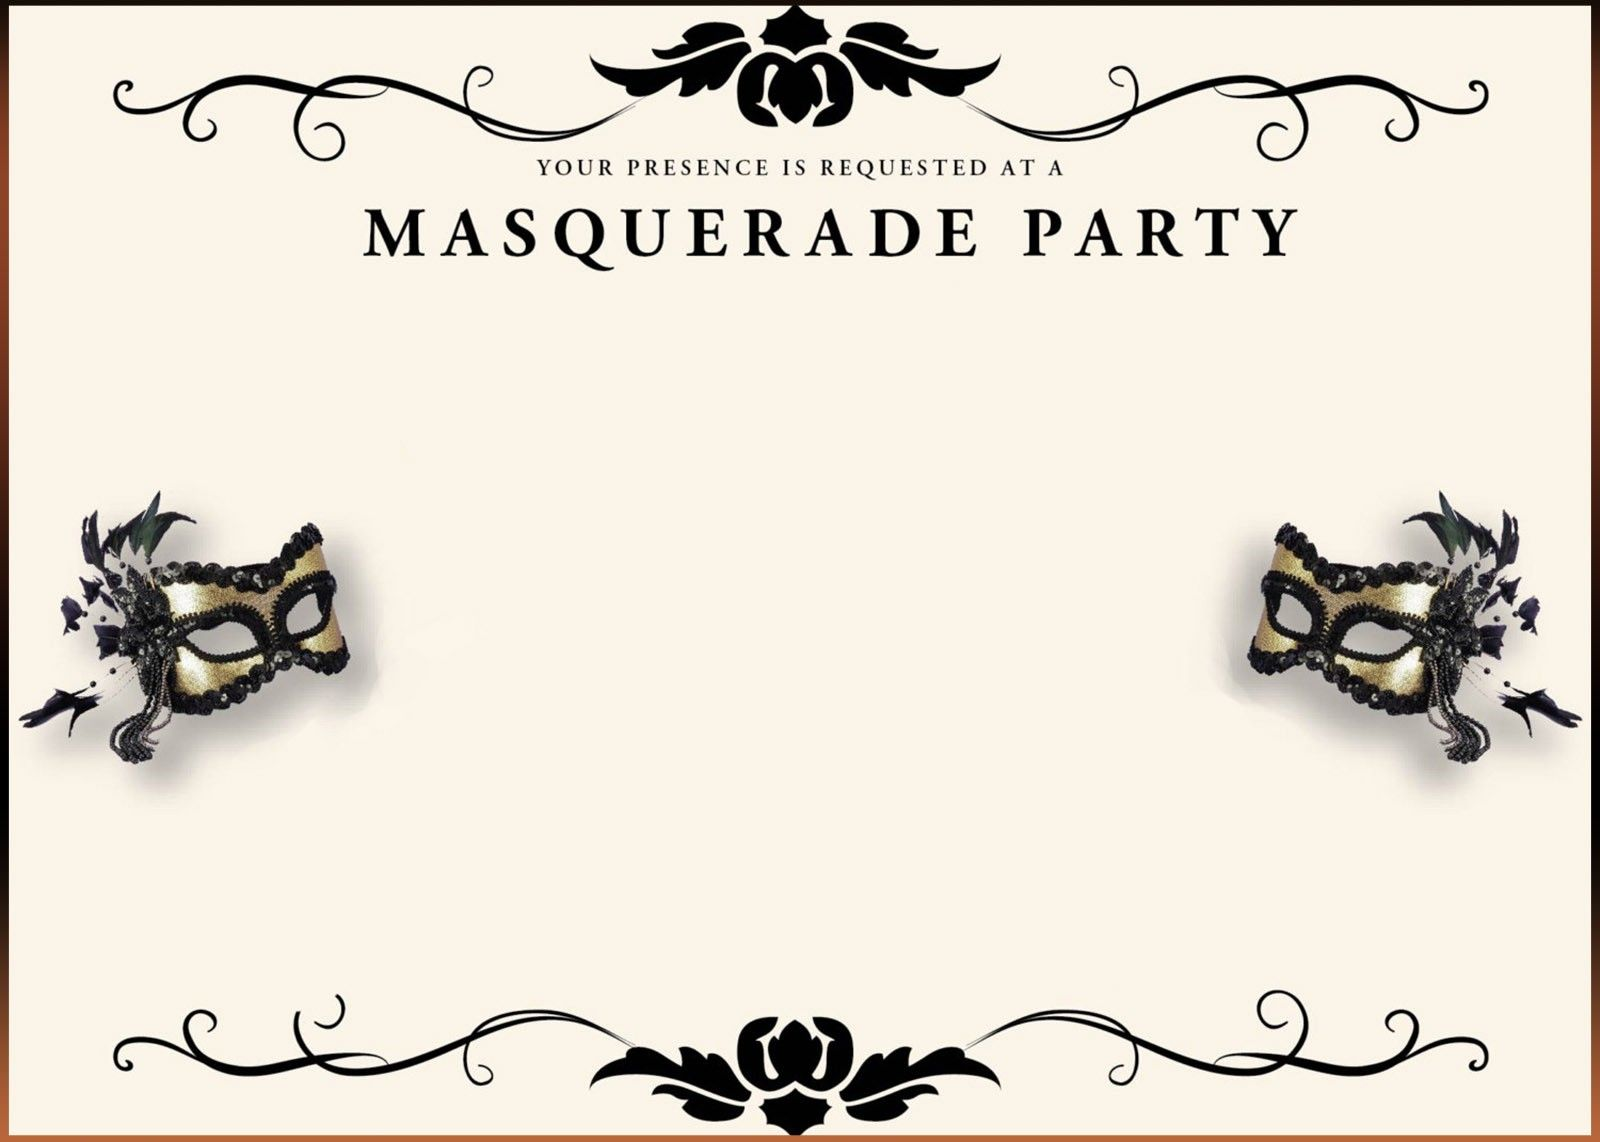 vector freeuse download Masquerade clipart masquerade invitation. Your invited to the.